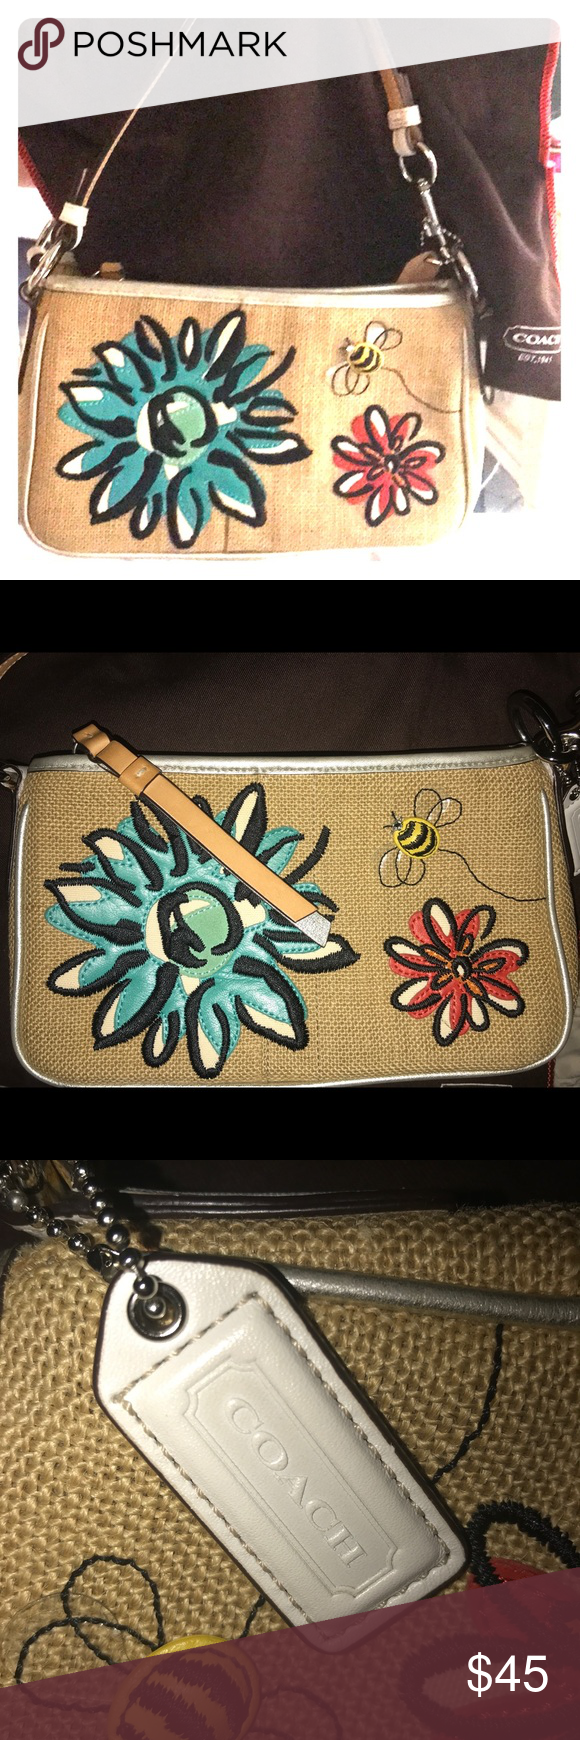 Coach Pouchette Embroidered Flower Bees Bag Purse Small Coach